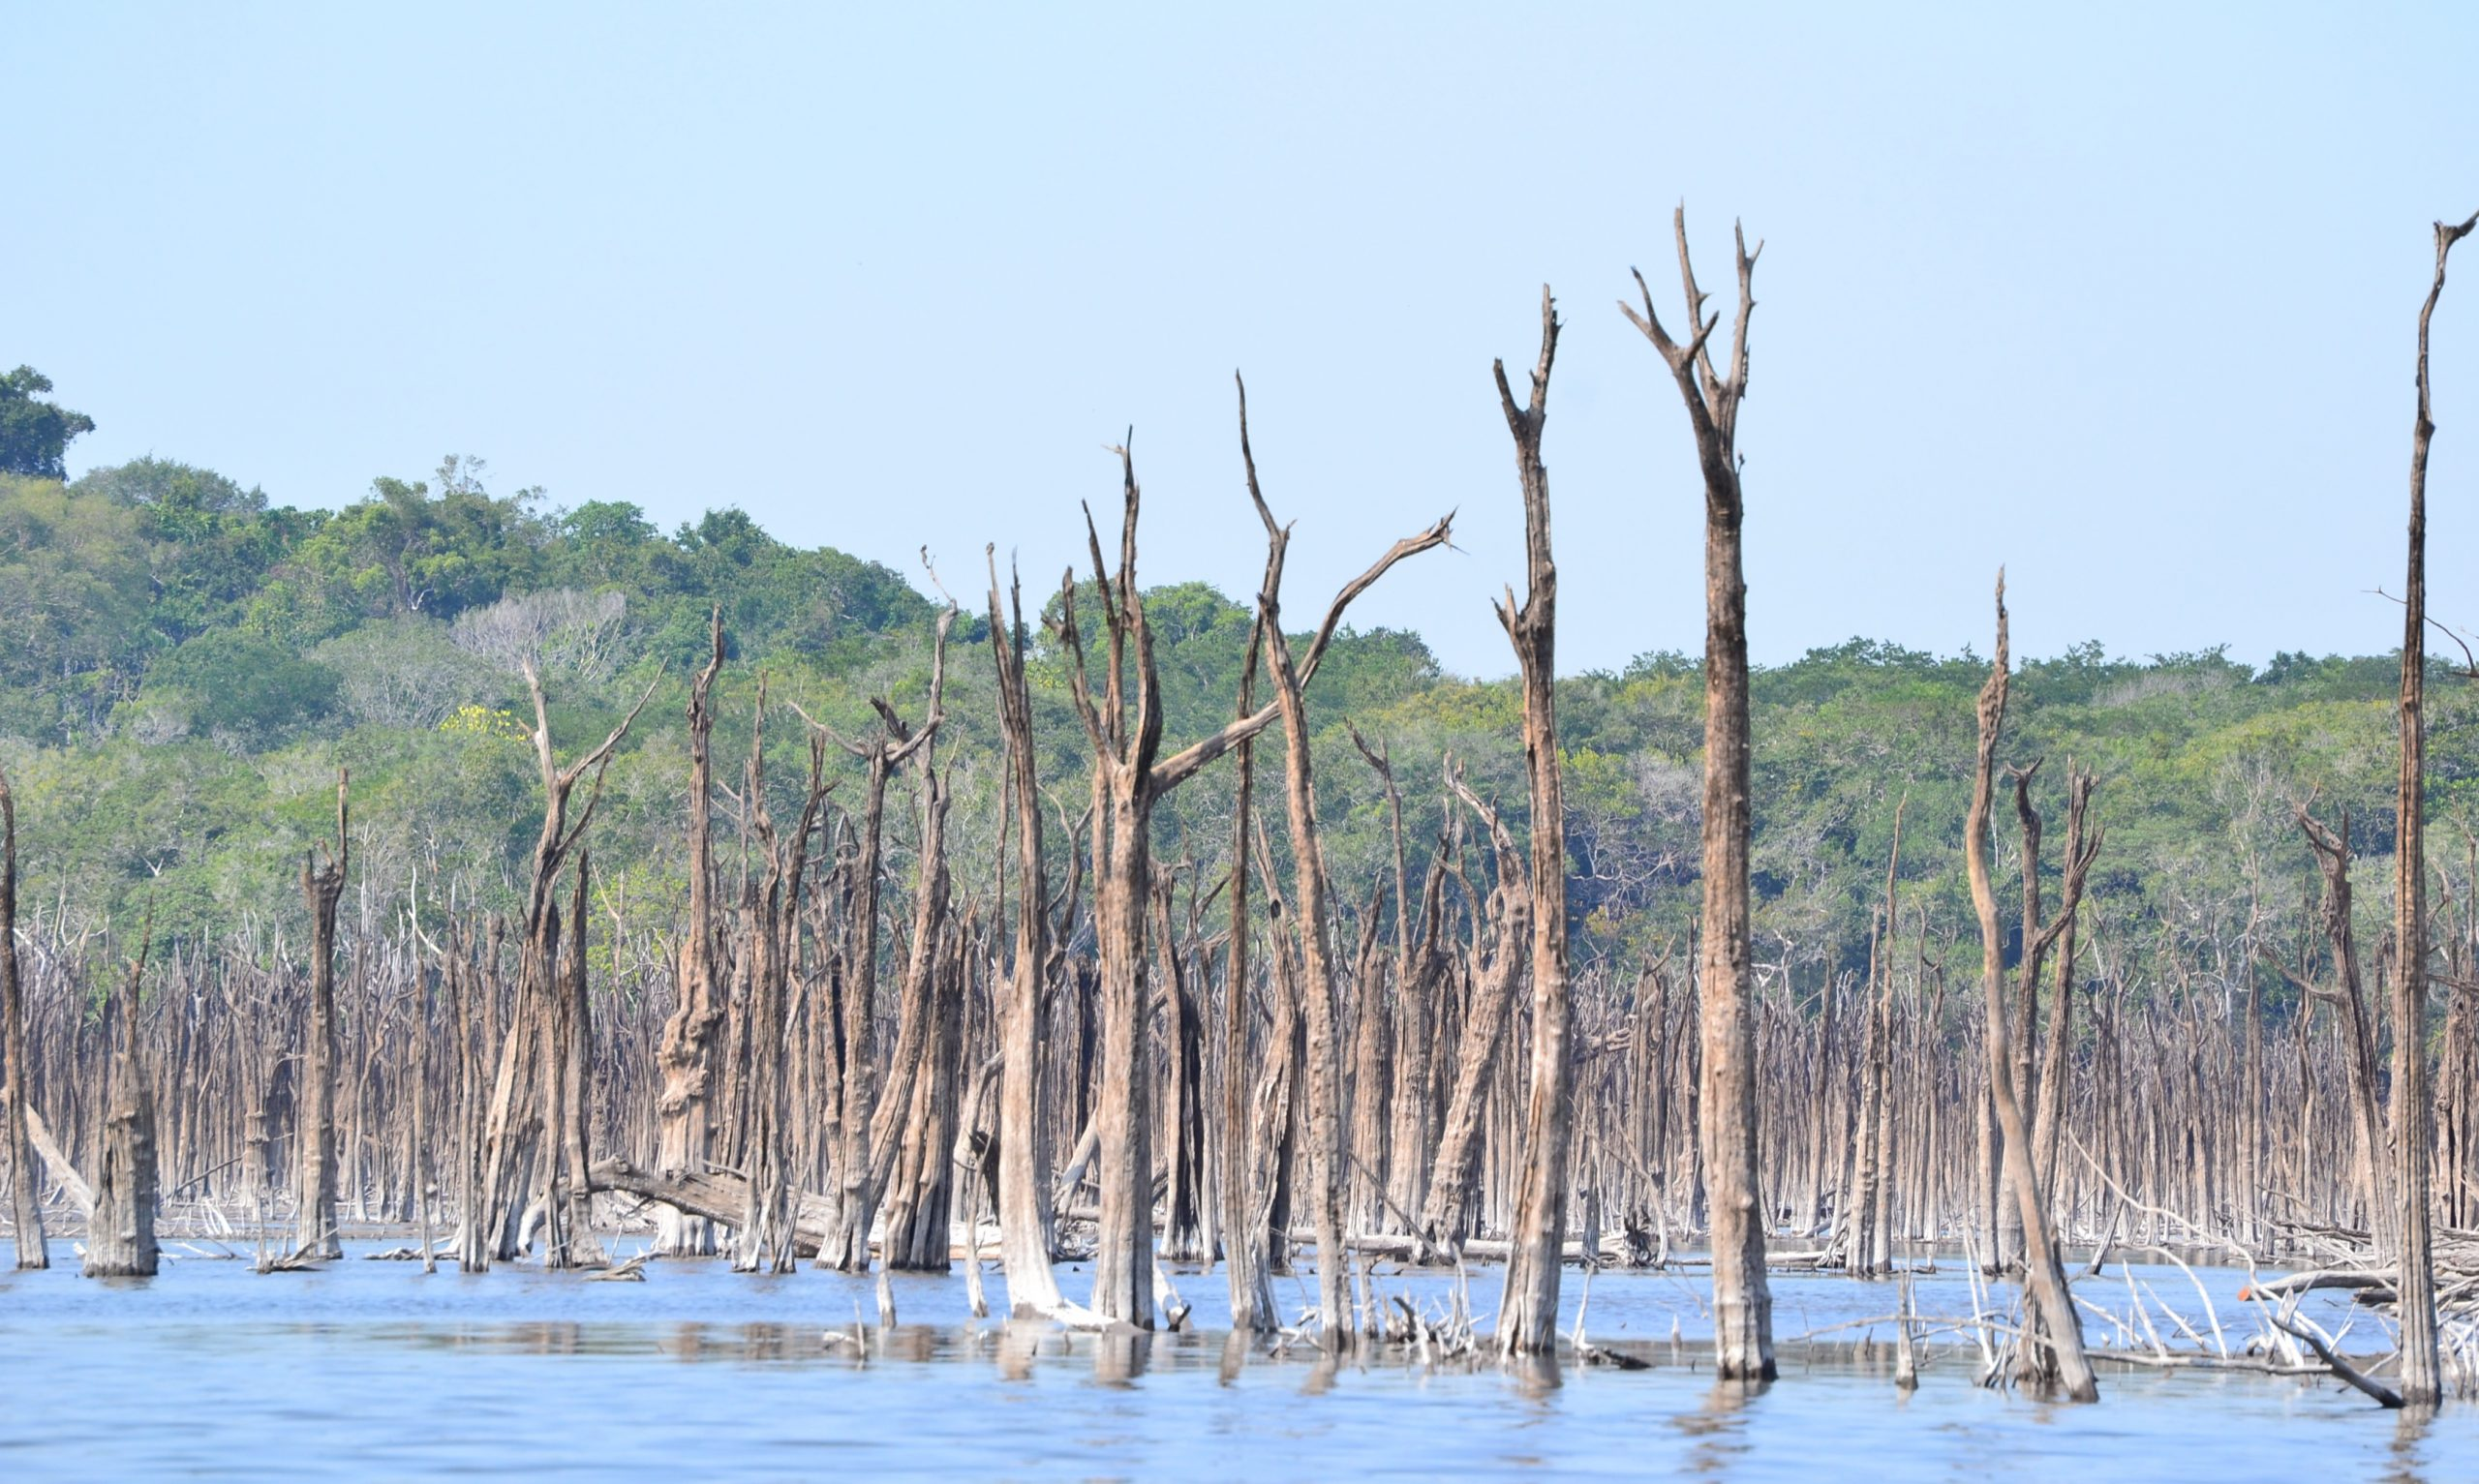 Many igapó forest along the Uatumã have died, leaving lots of dead tree stems behind in the shallow water.